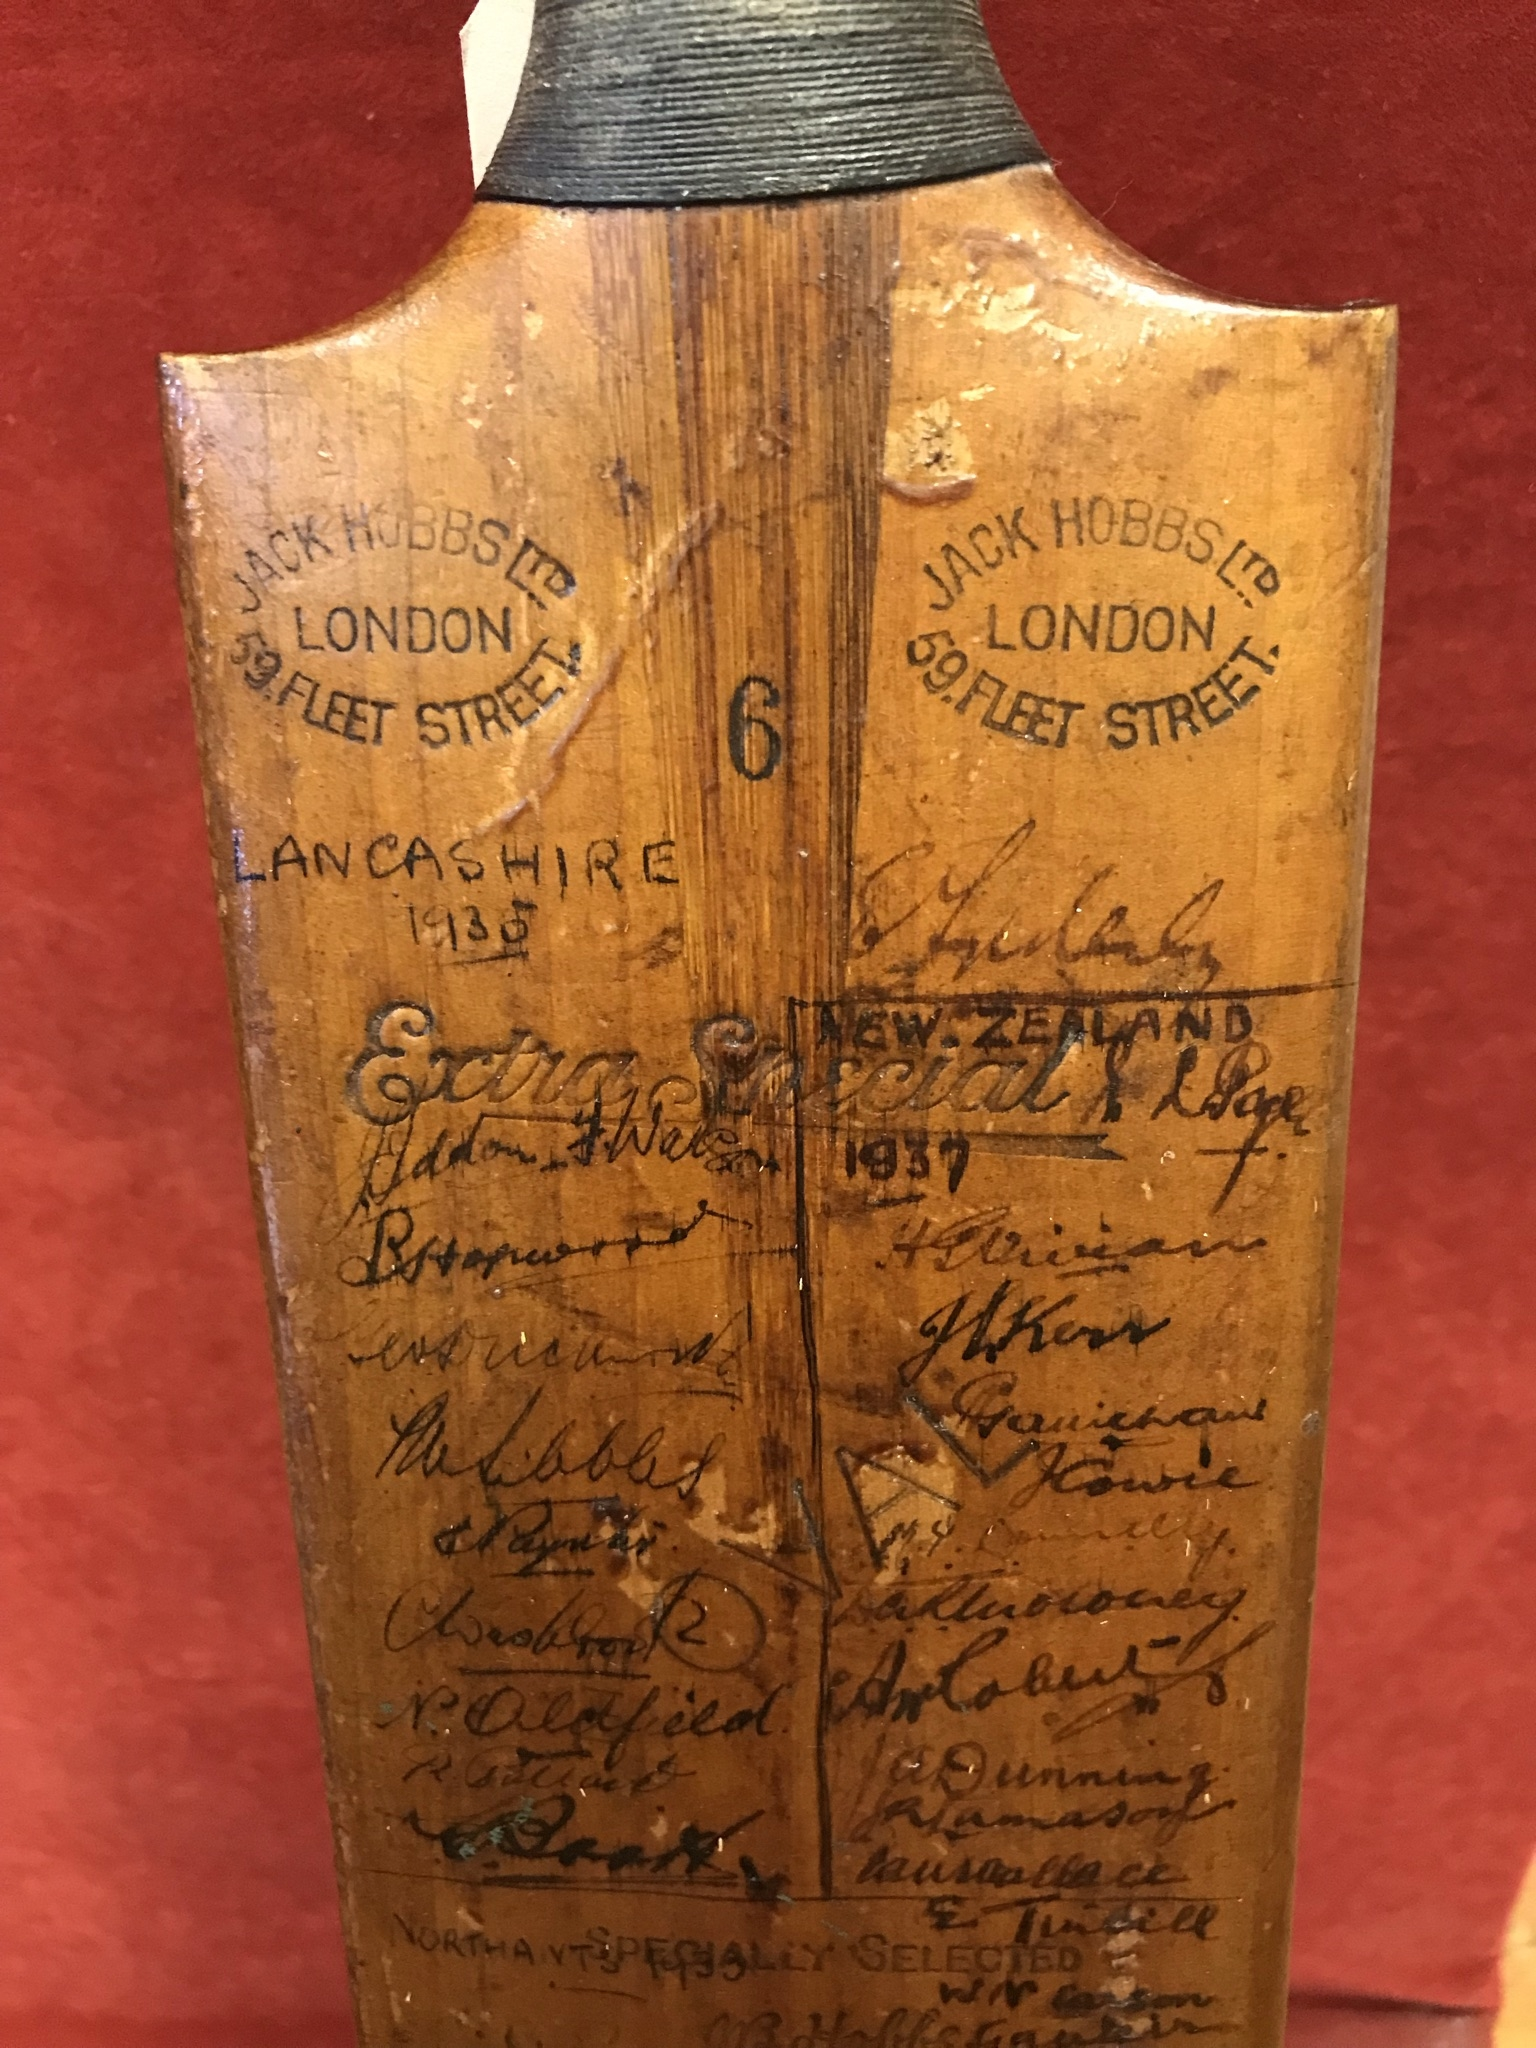 A Hobbs No 6 Cricket Bat autographed with 1934 Australia including Bradman, Chipperfield, O' - Image 6 of 7